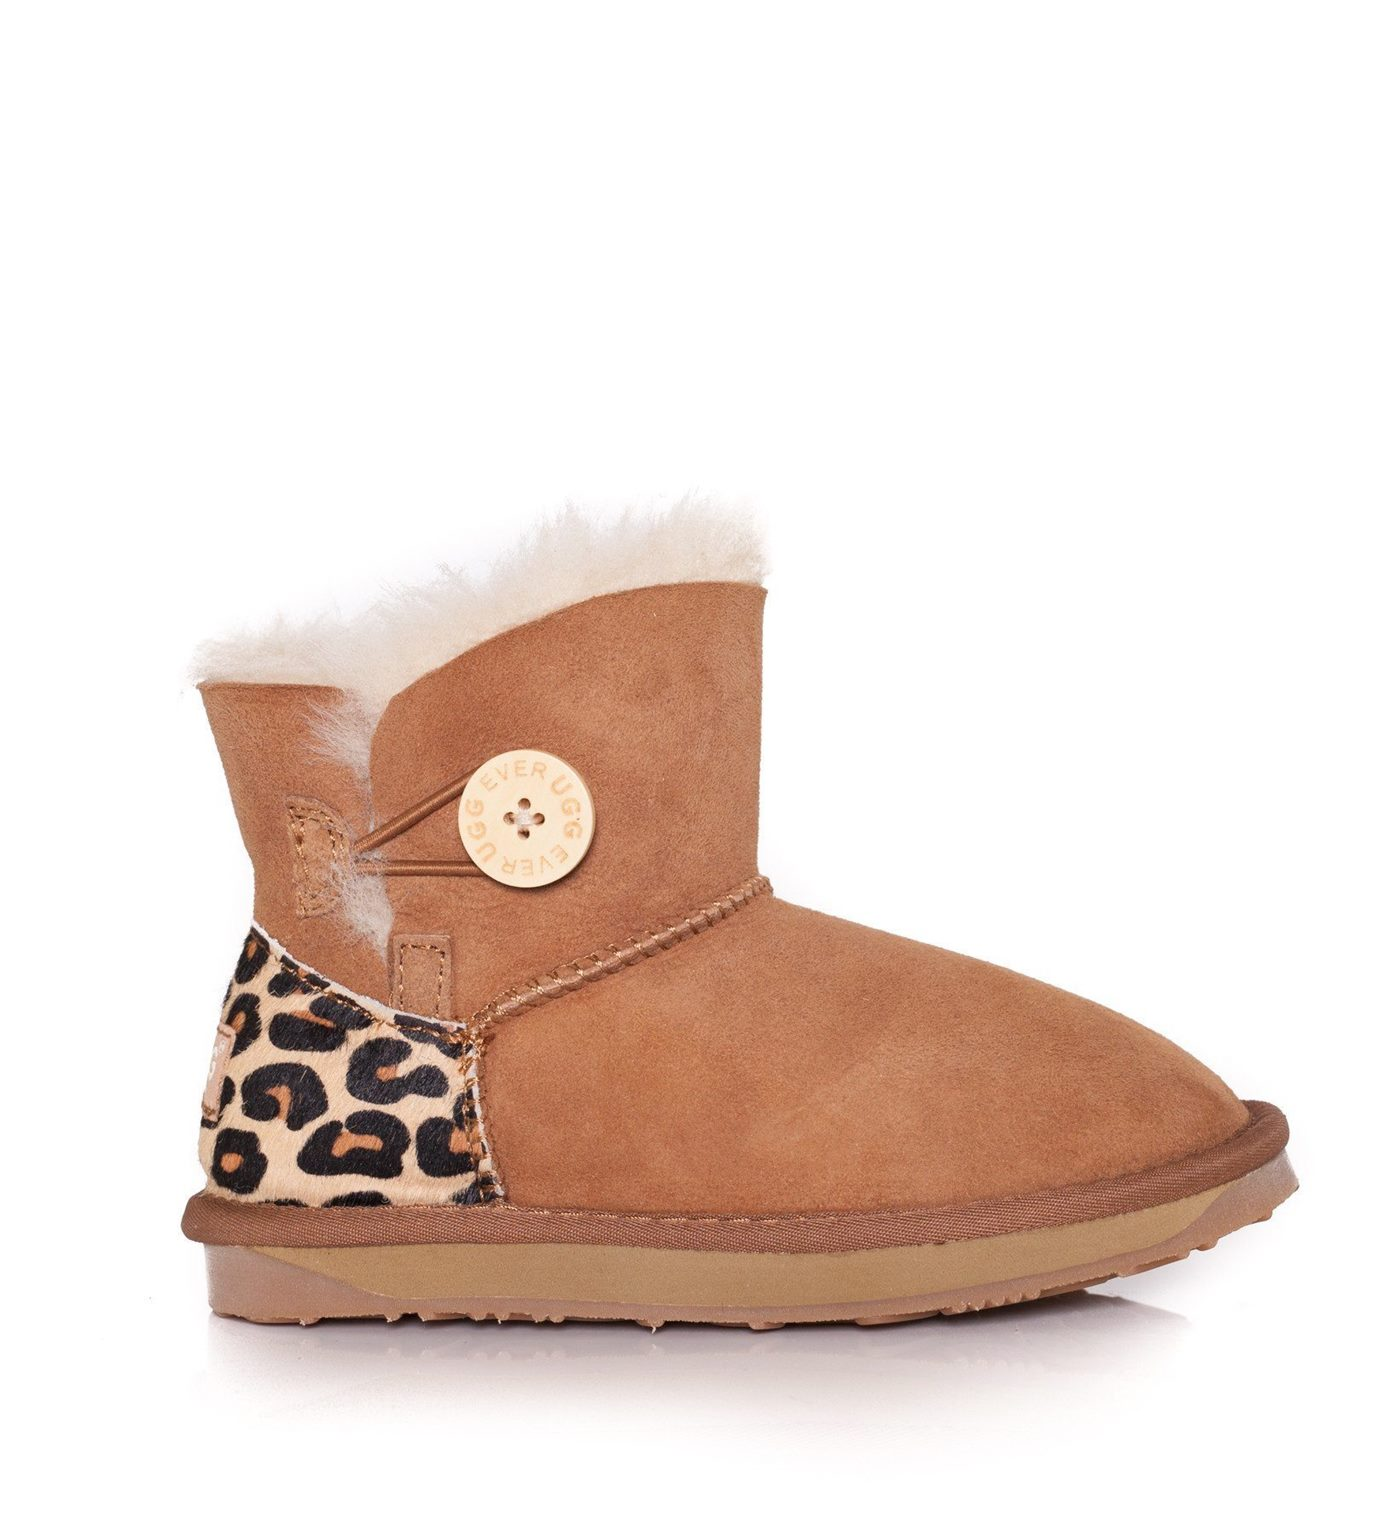 eee504fdeda Kids UGG Boots - Child Mini Button, Australian Sheepskin